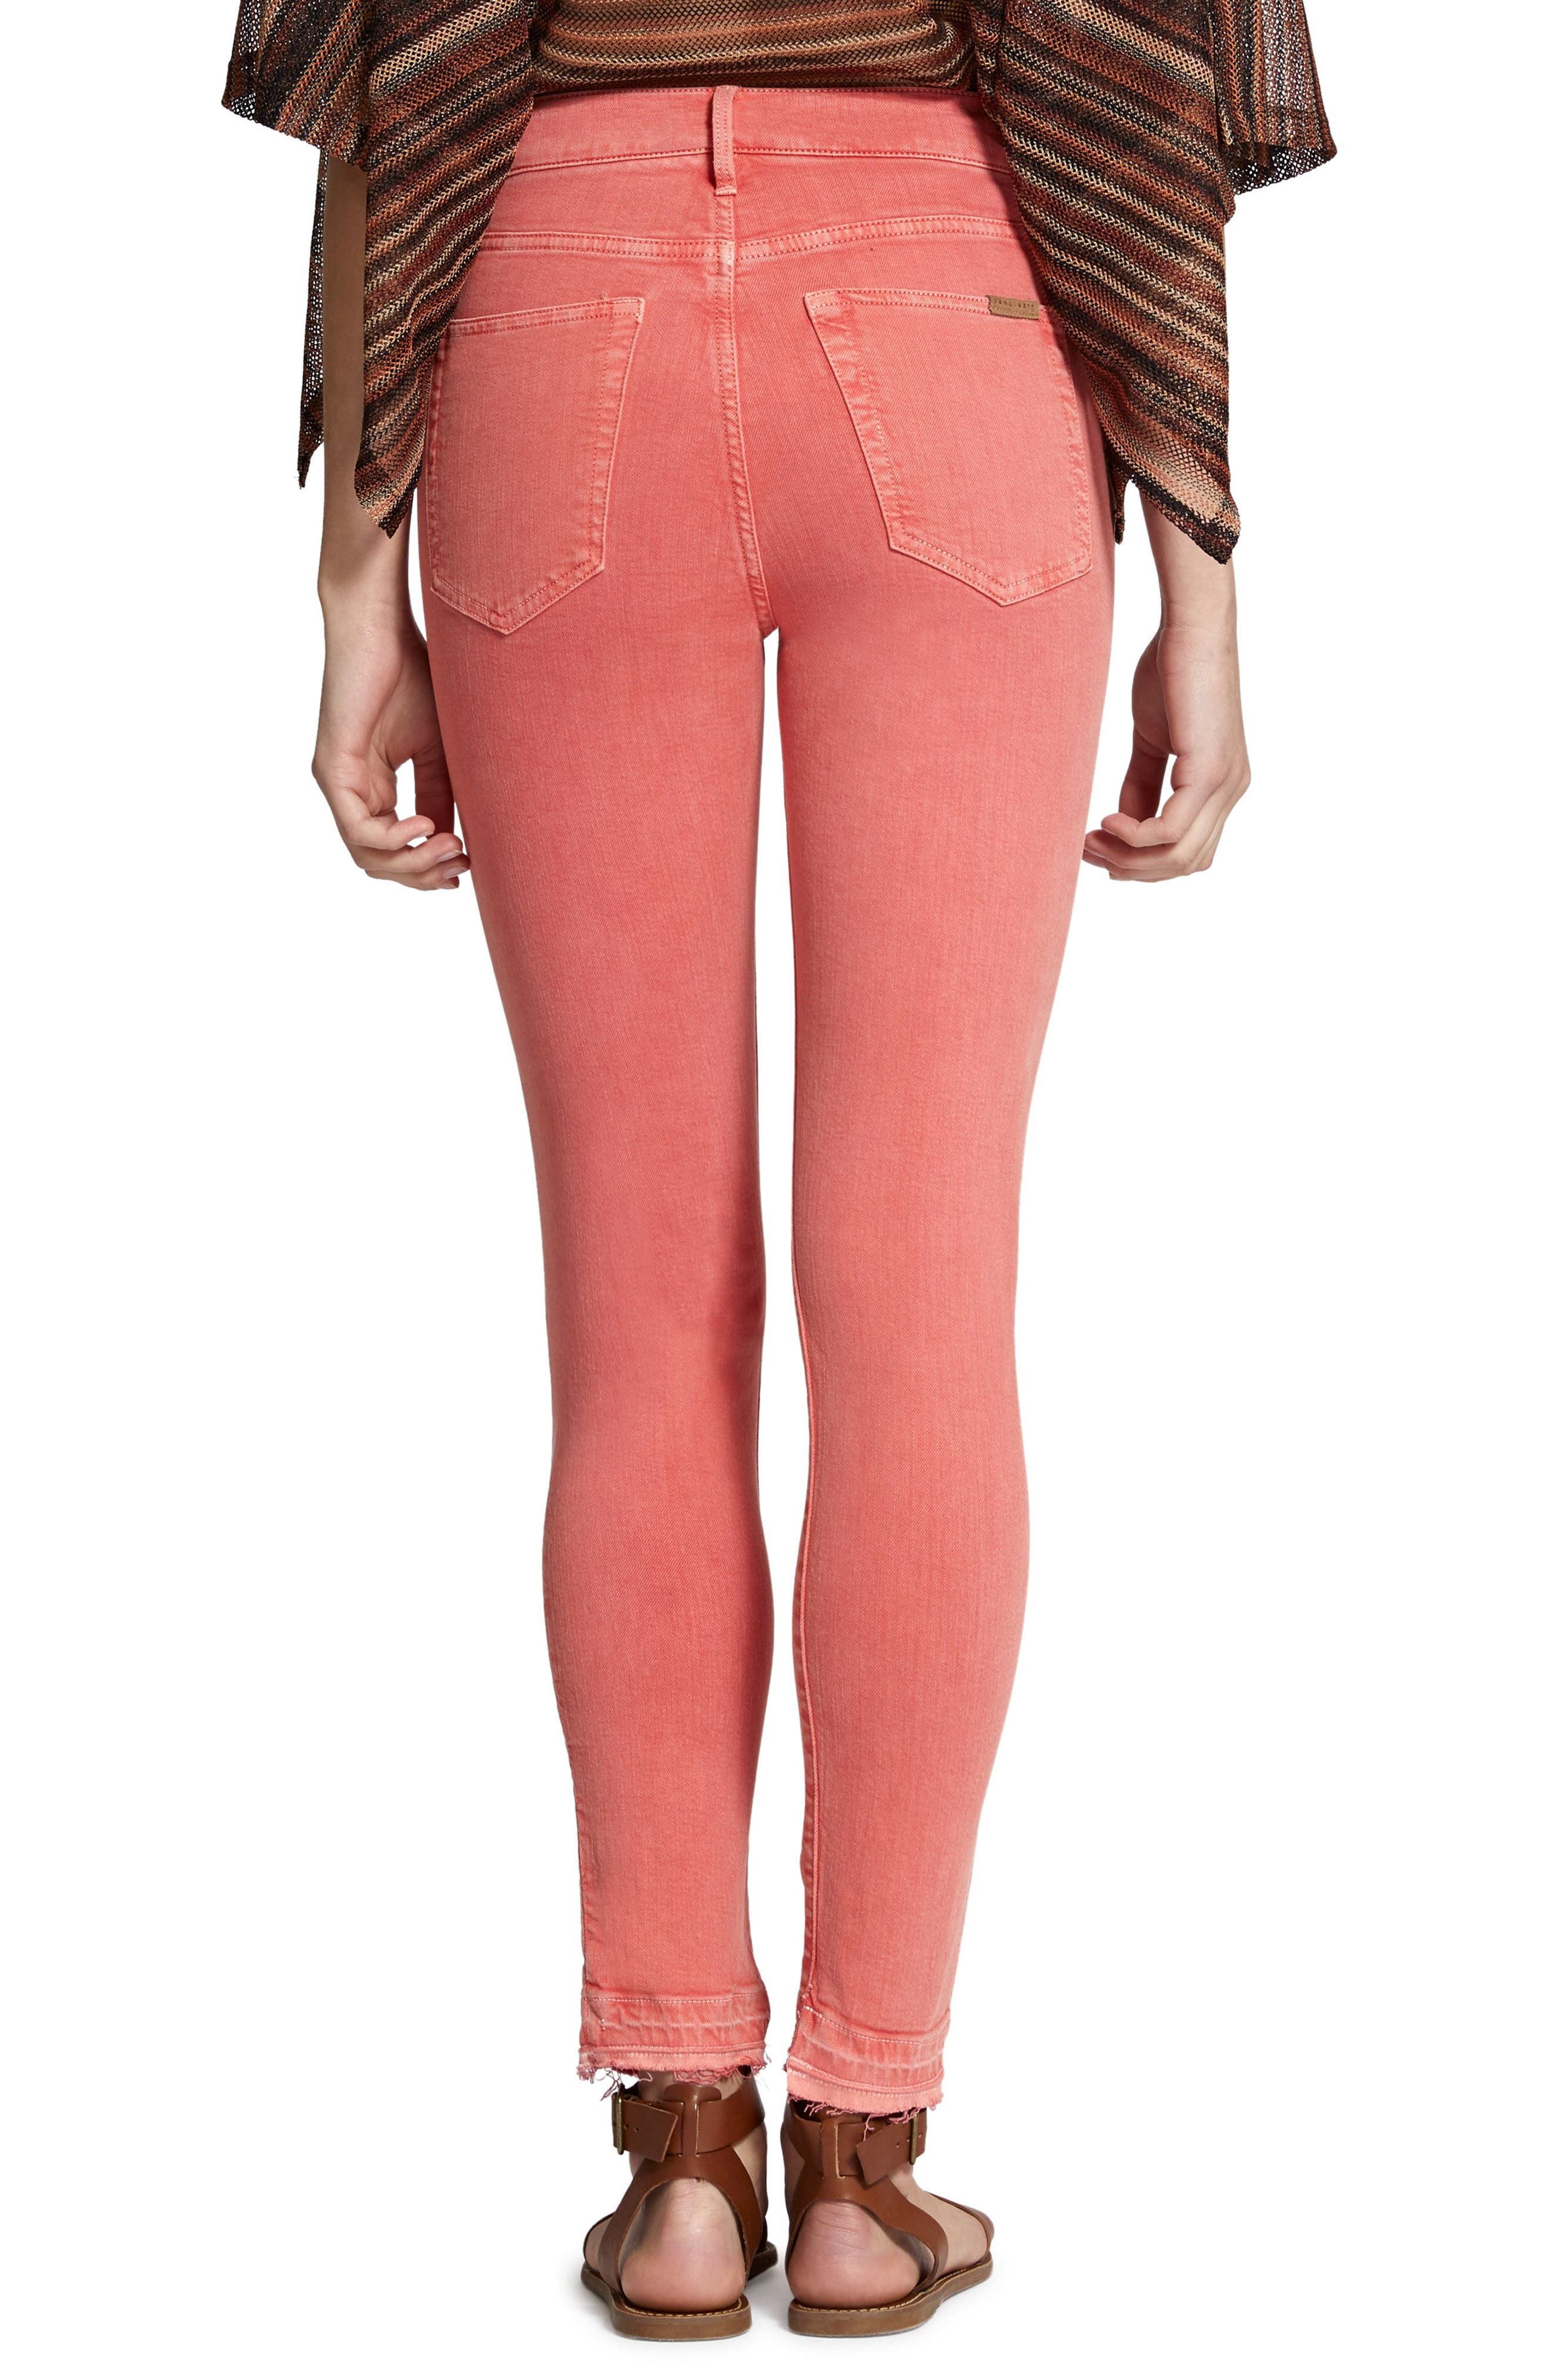 Robbie High Waist Ankle Jeans,                             Alternate thumbnail 2, color,                             Chili Wash